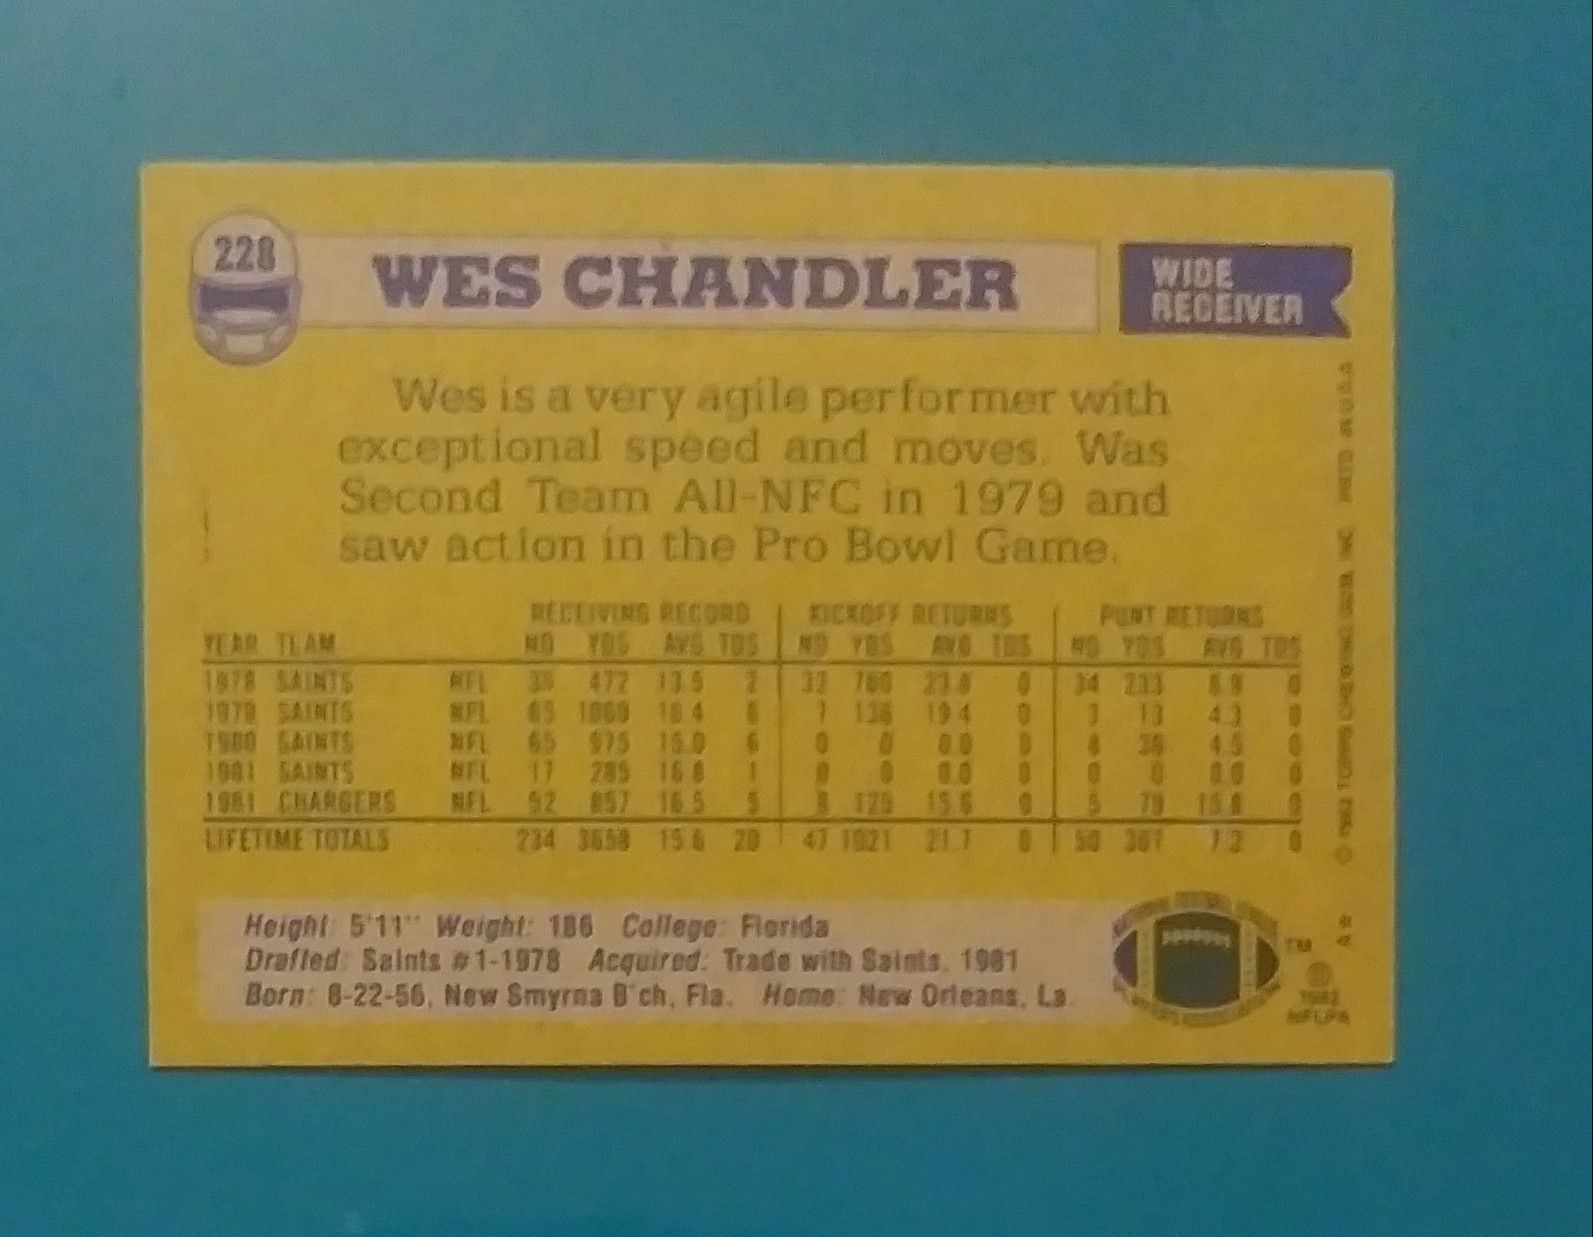 1982 Topps Wes Chandler San Diego Chargers #228 Wide Receiver Football Card Vintage Collectible Sports NFL